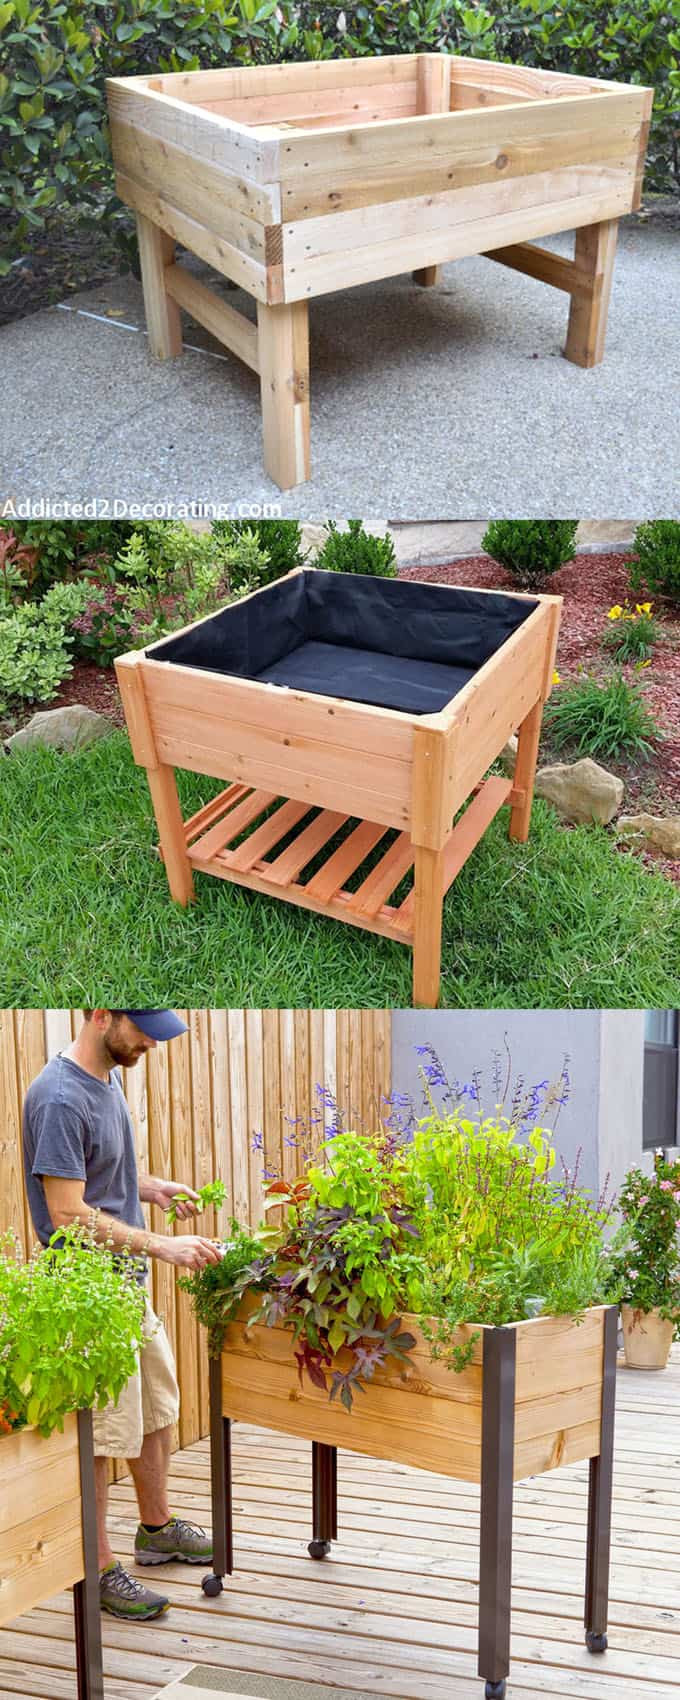 Best ideas about DIY Elevated Planter Box . Save or Pin 28 Amazing DIY Raised Bed Gardens A Piece Rainbow Now.